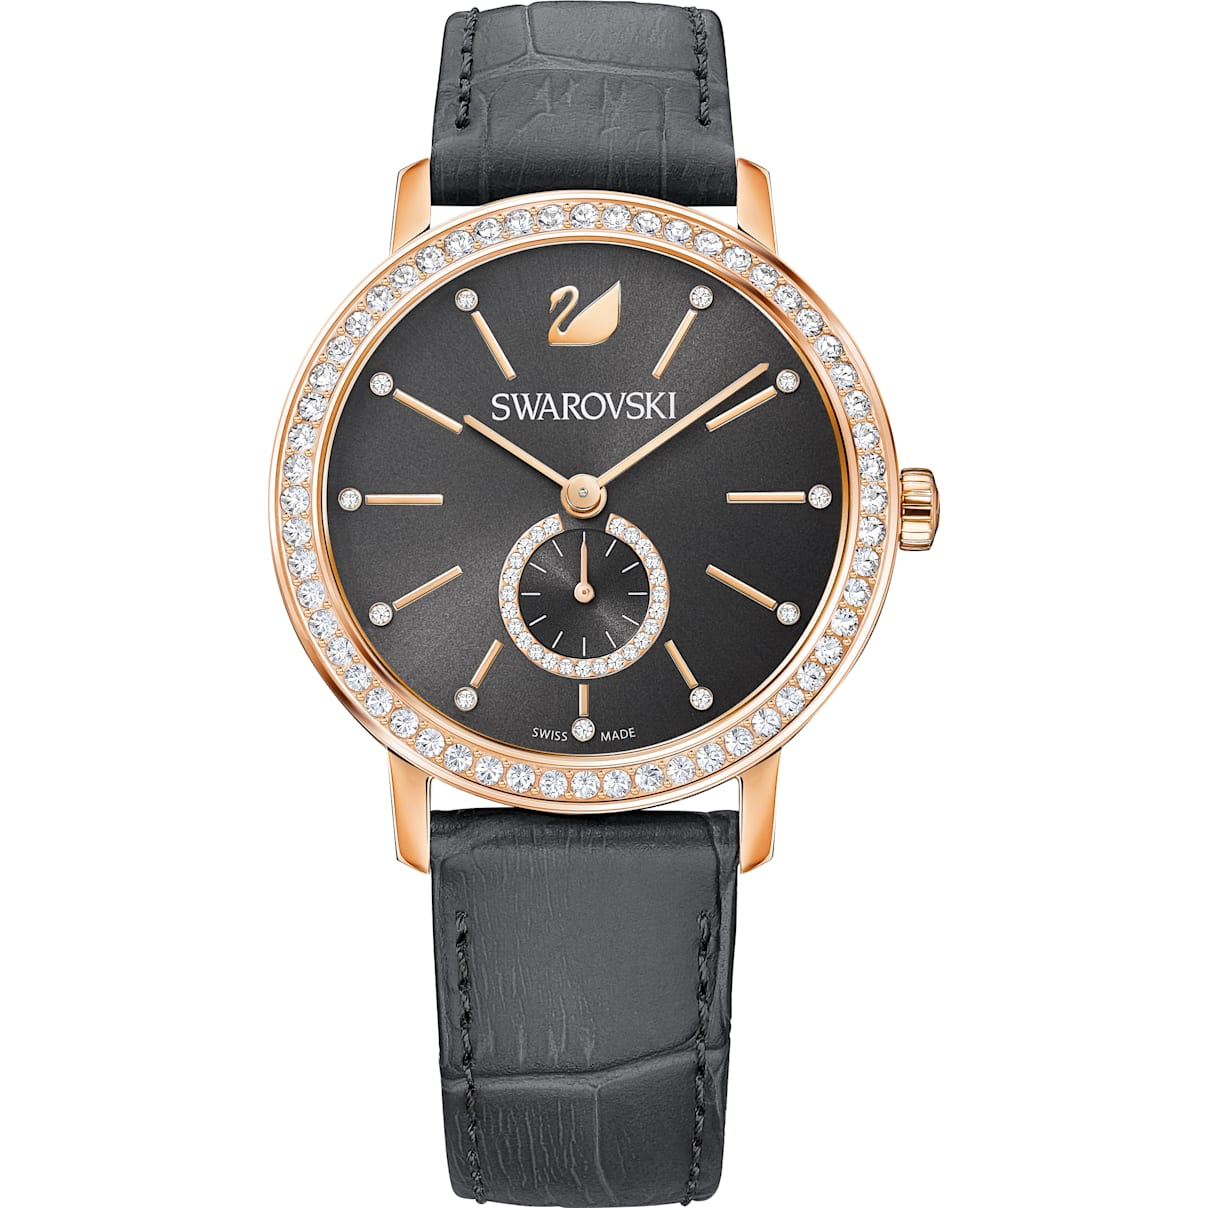 Swarovski Graceful Lady Watch, Leather strap, Gray, Rose-gold tone PVD